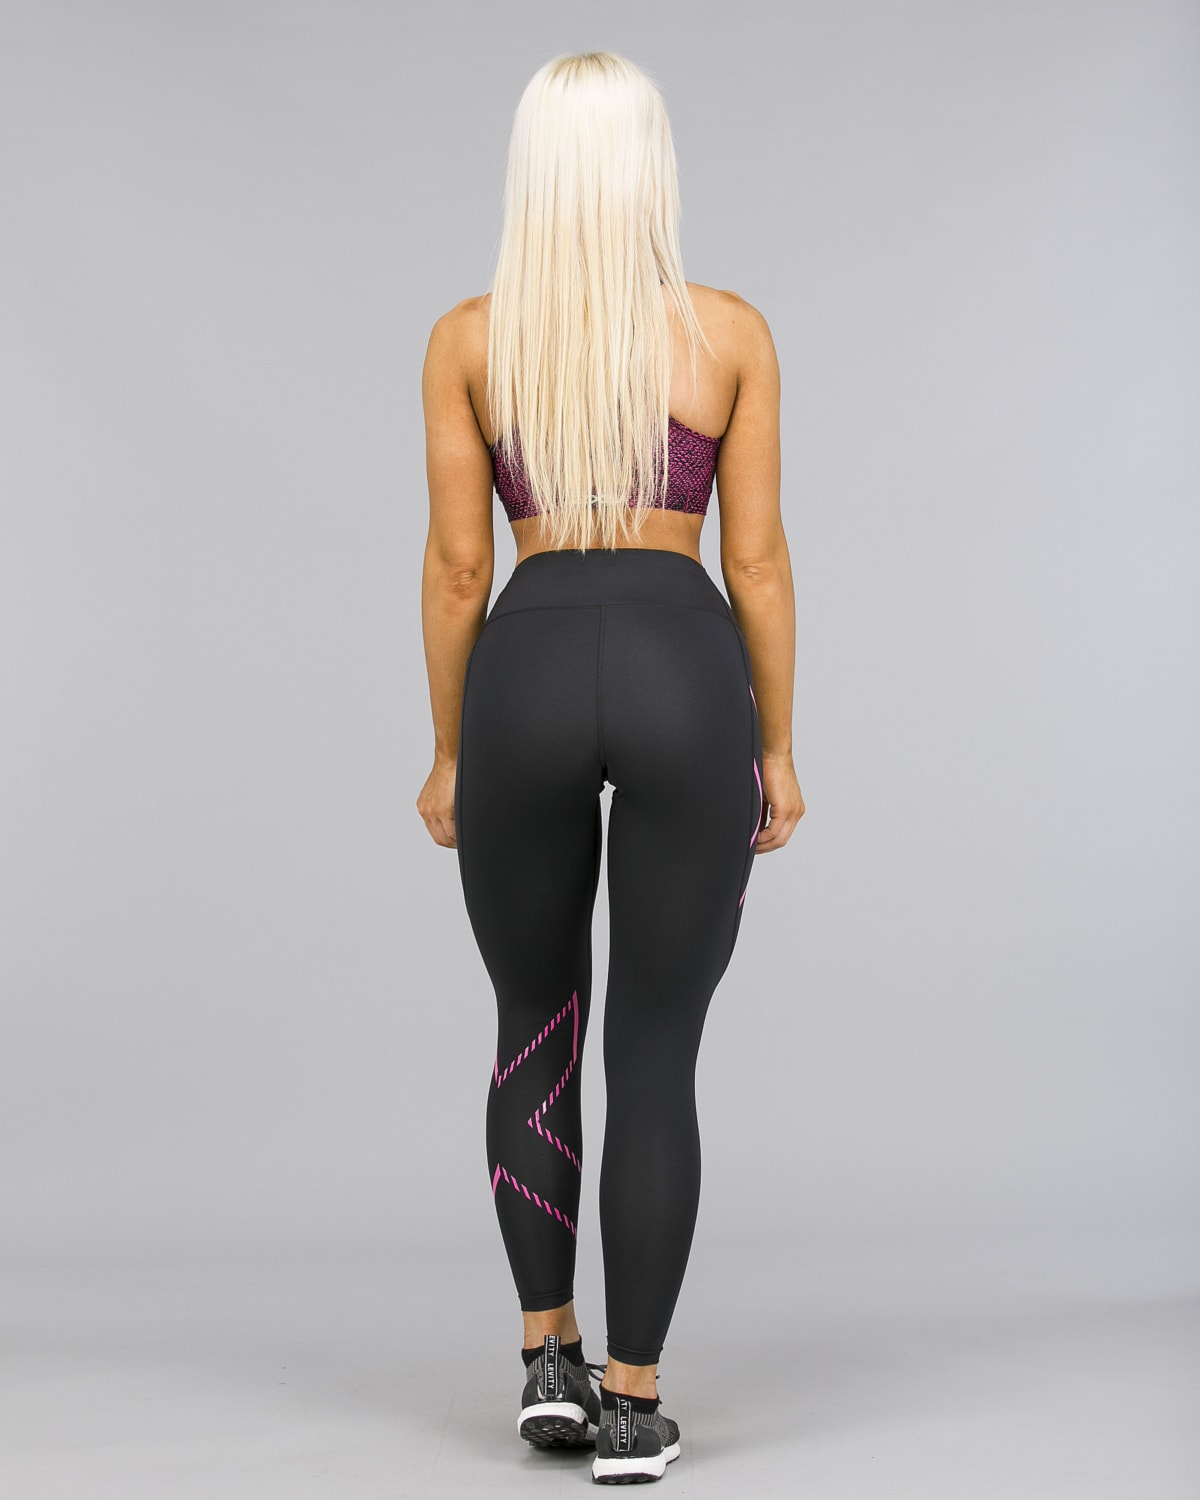 2XU – Bonded Mid-Rise Compression Tights – Black:Fracture Fuschia a